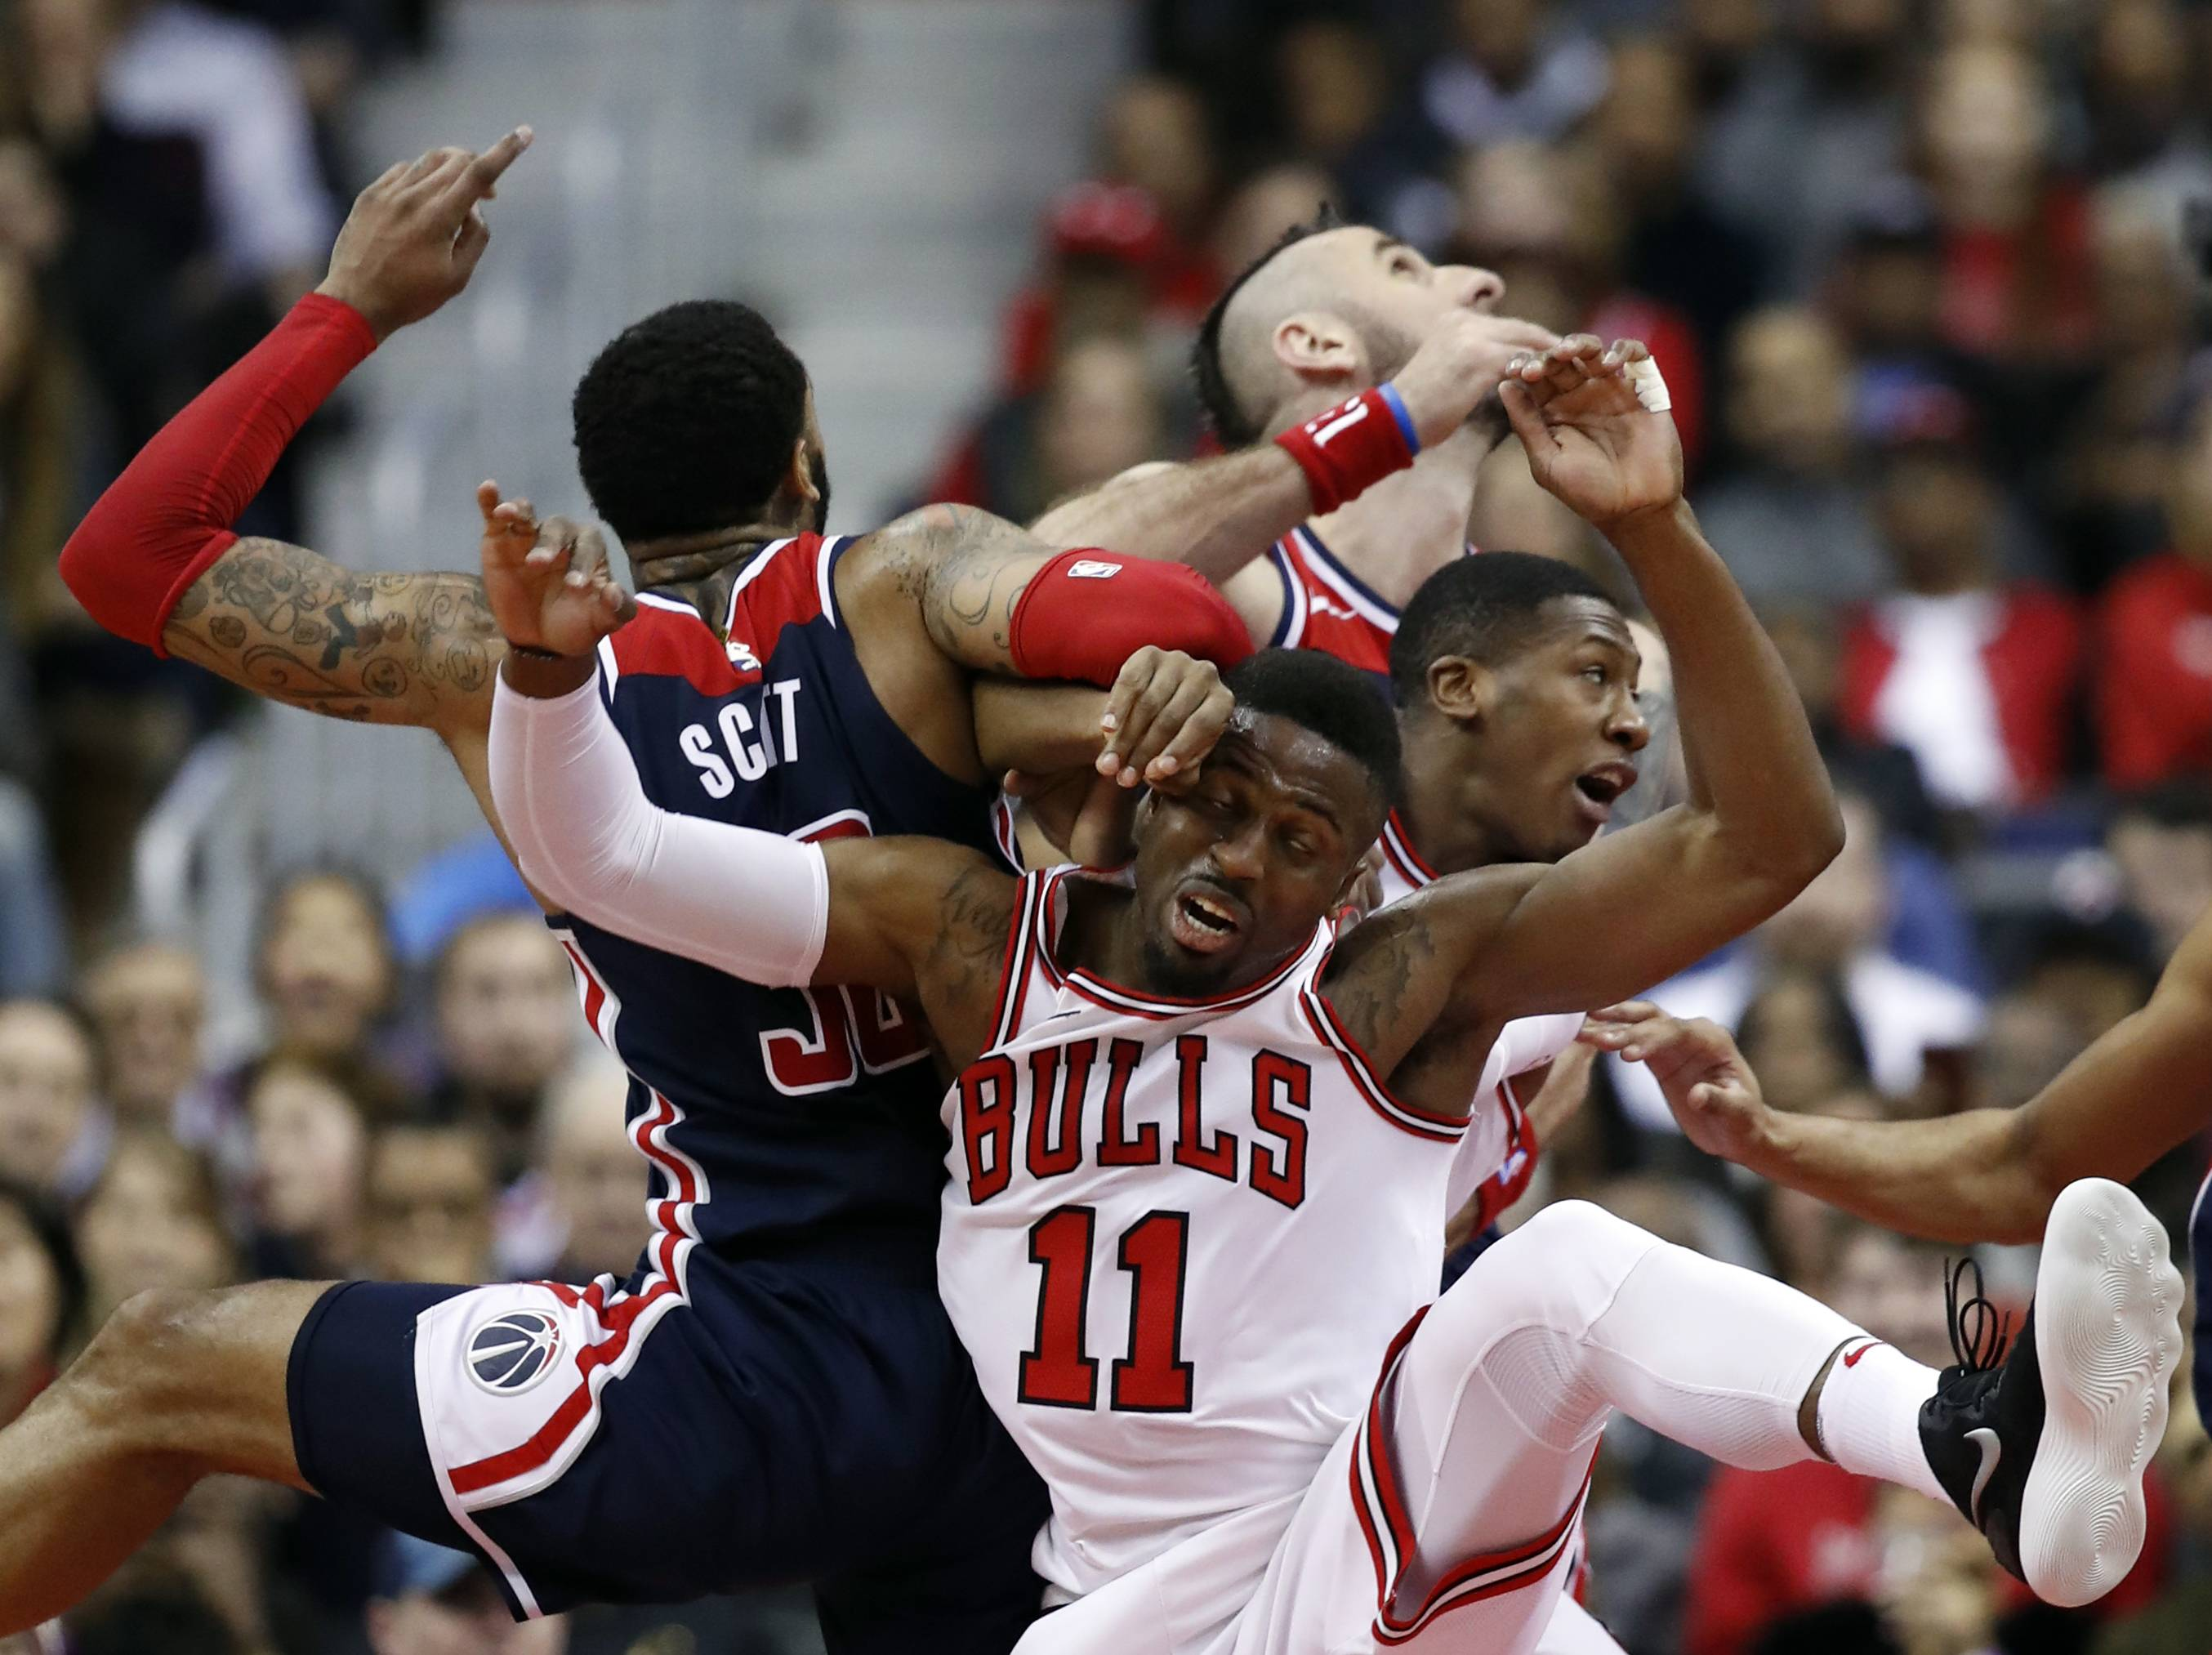 Bulls start fast, but can't finish off a victory in Washington